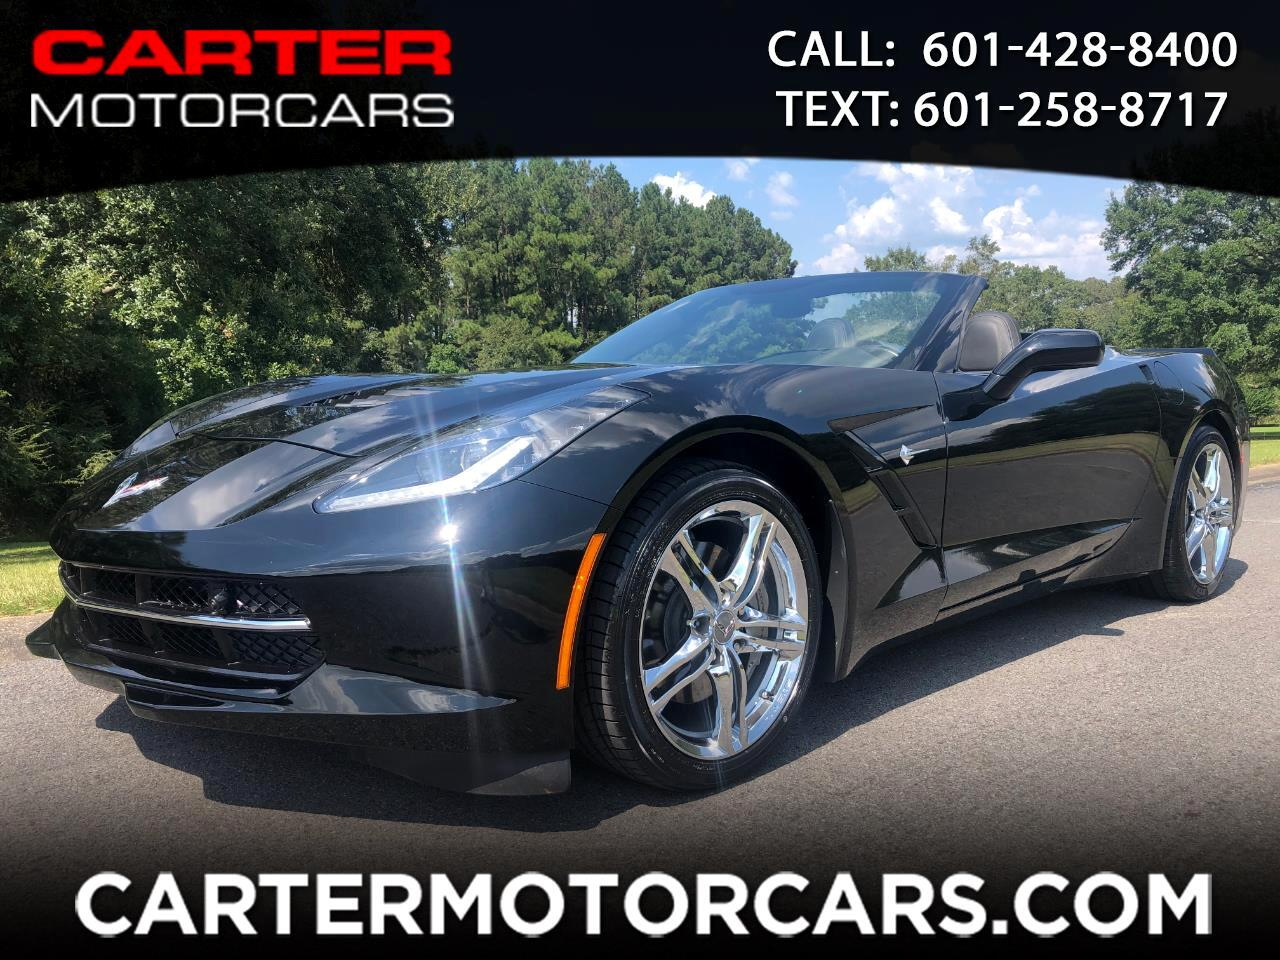 2017 Chevrolet Corvette 3LT Convertible